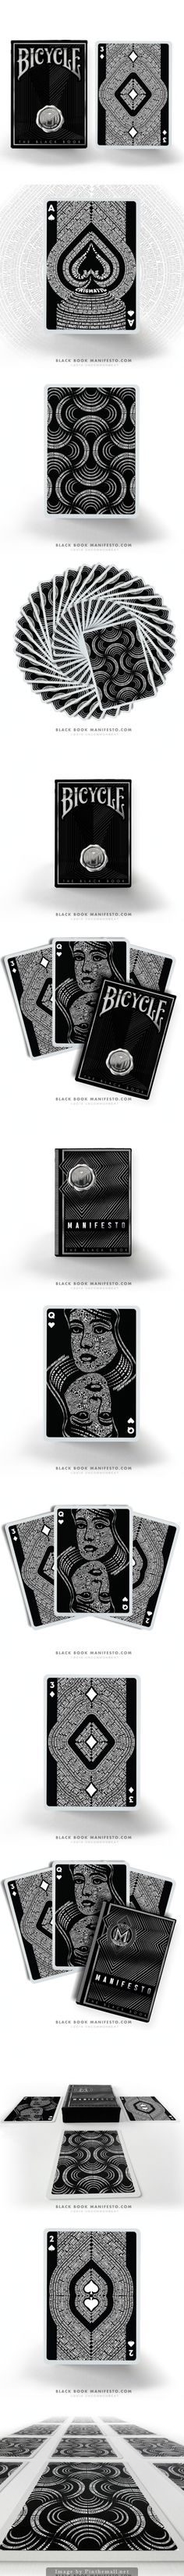 The Black Book Manifesto : A Typographic Deck